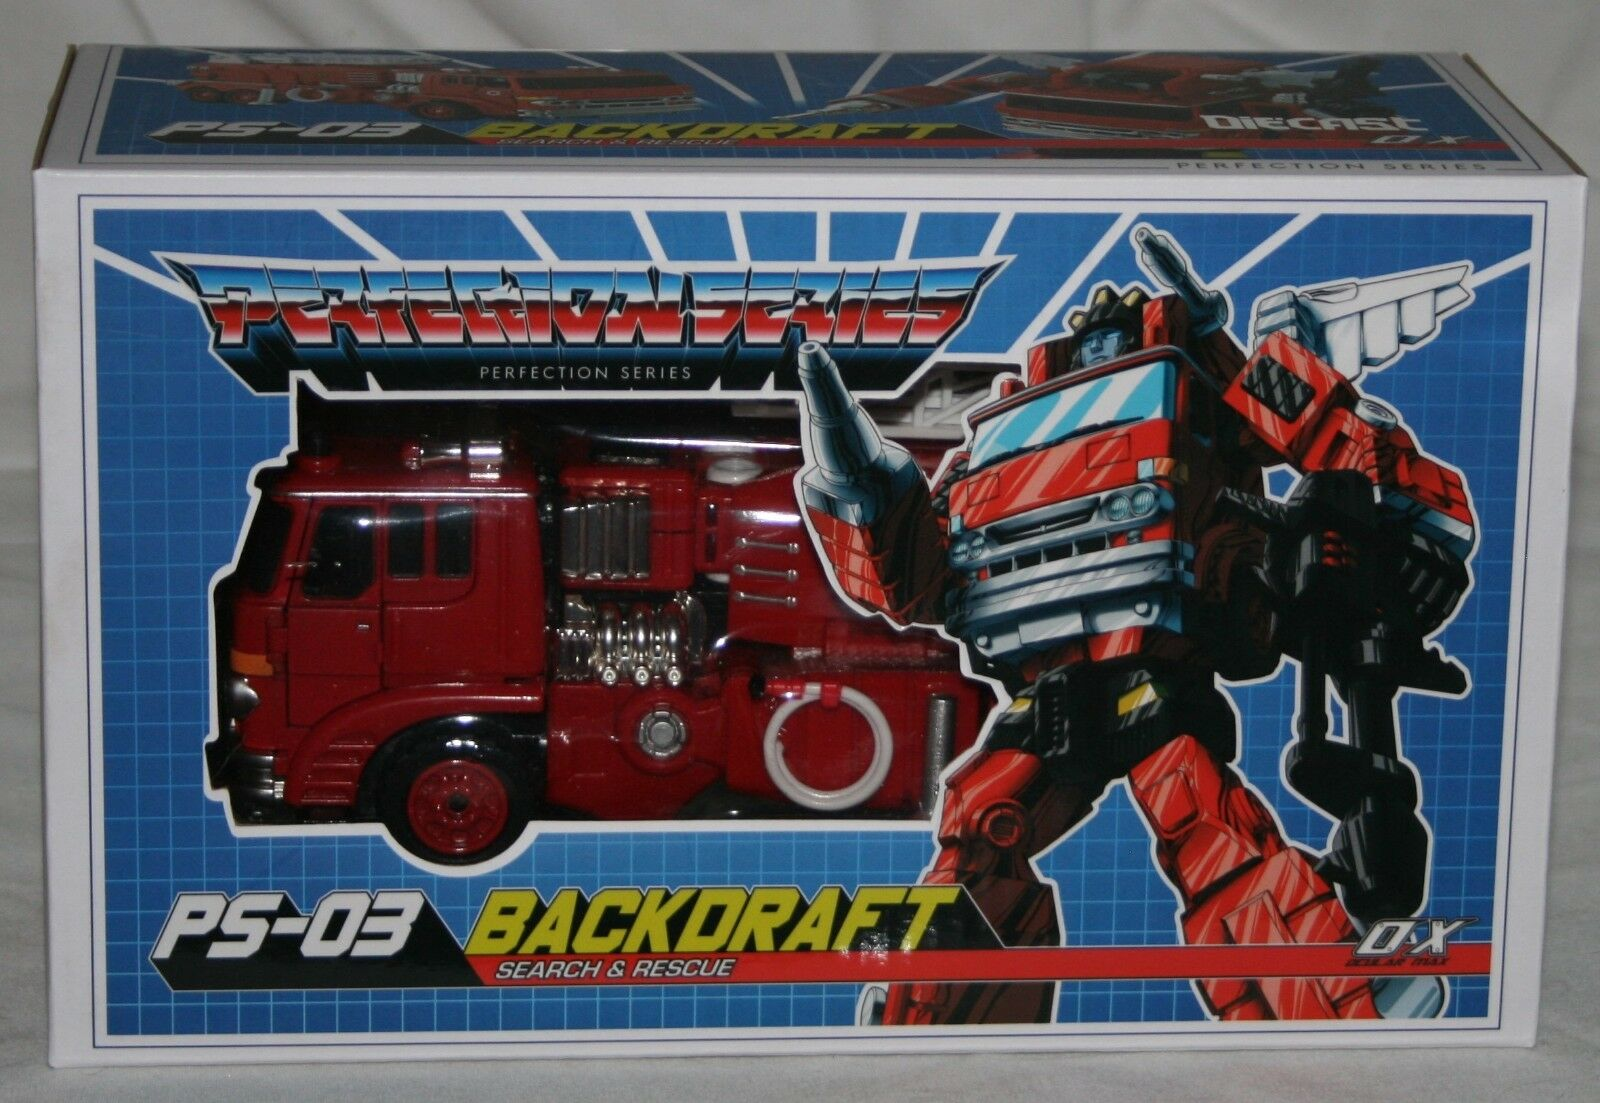 Transformers Mastermind Creations ps-03 Backdraft sin usar y en caja sellada